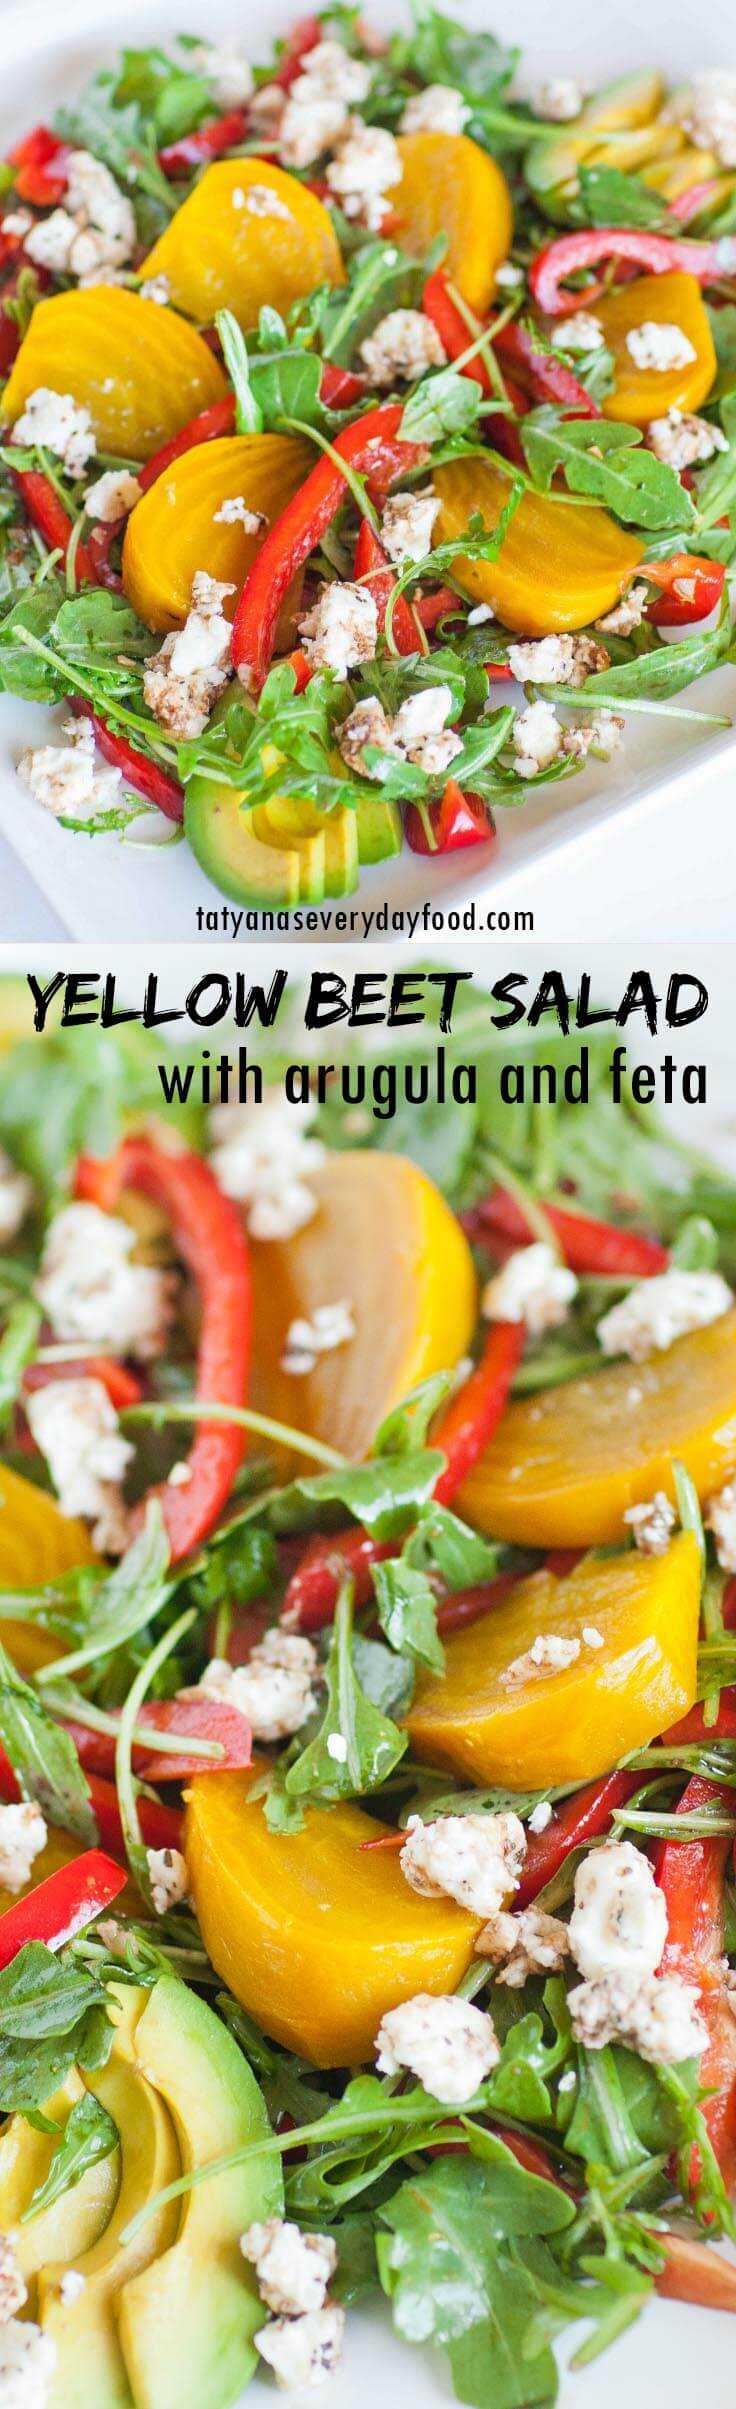 Yellow Beet Salad with arugula and feta cheese